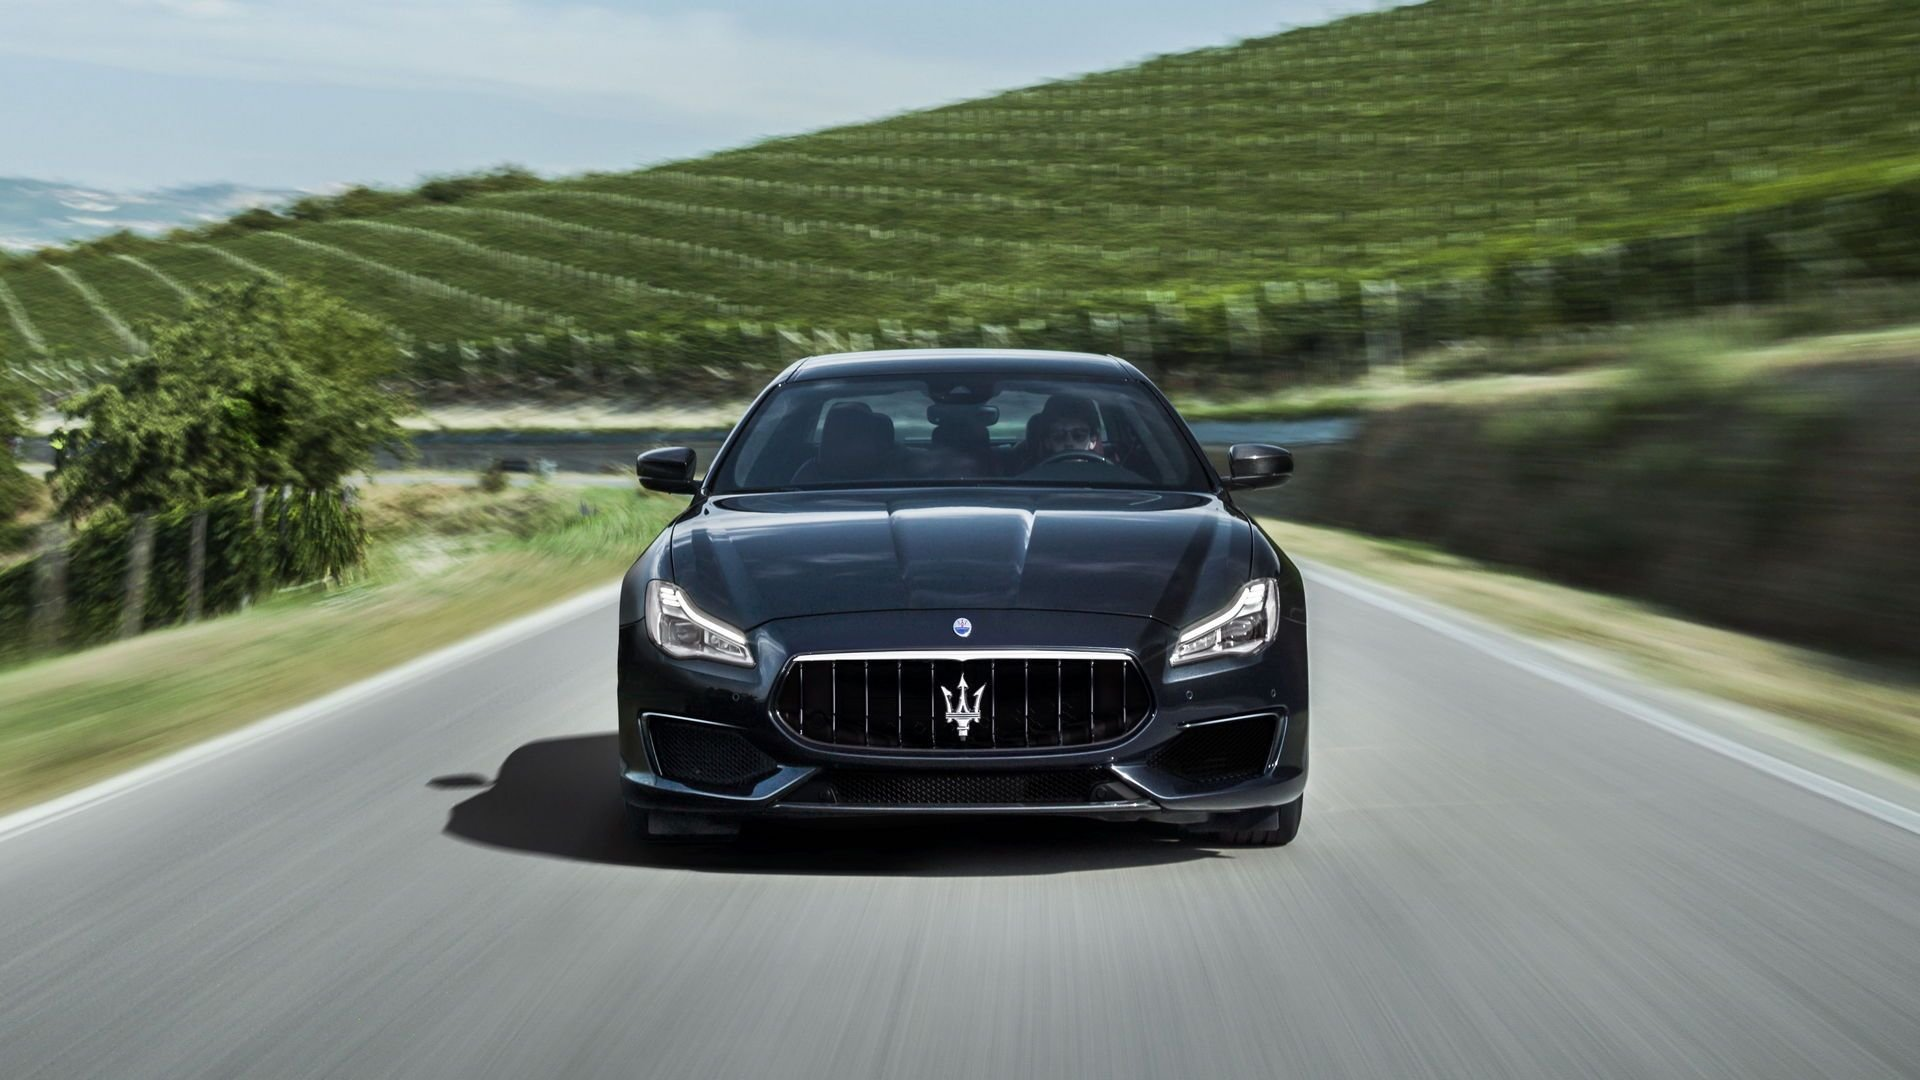 black 2018 maserati quattroporte racing down wilkes-barre blvd.